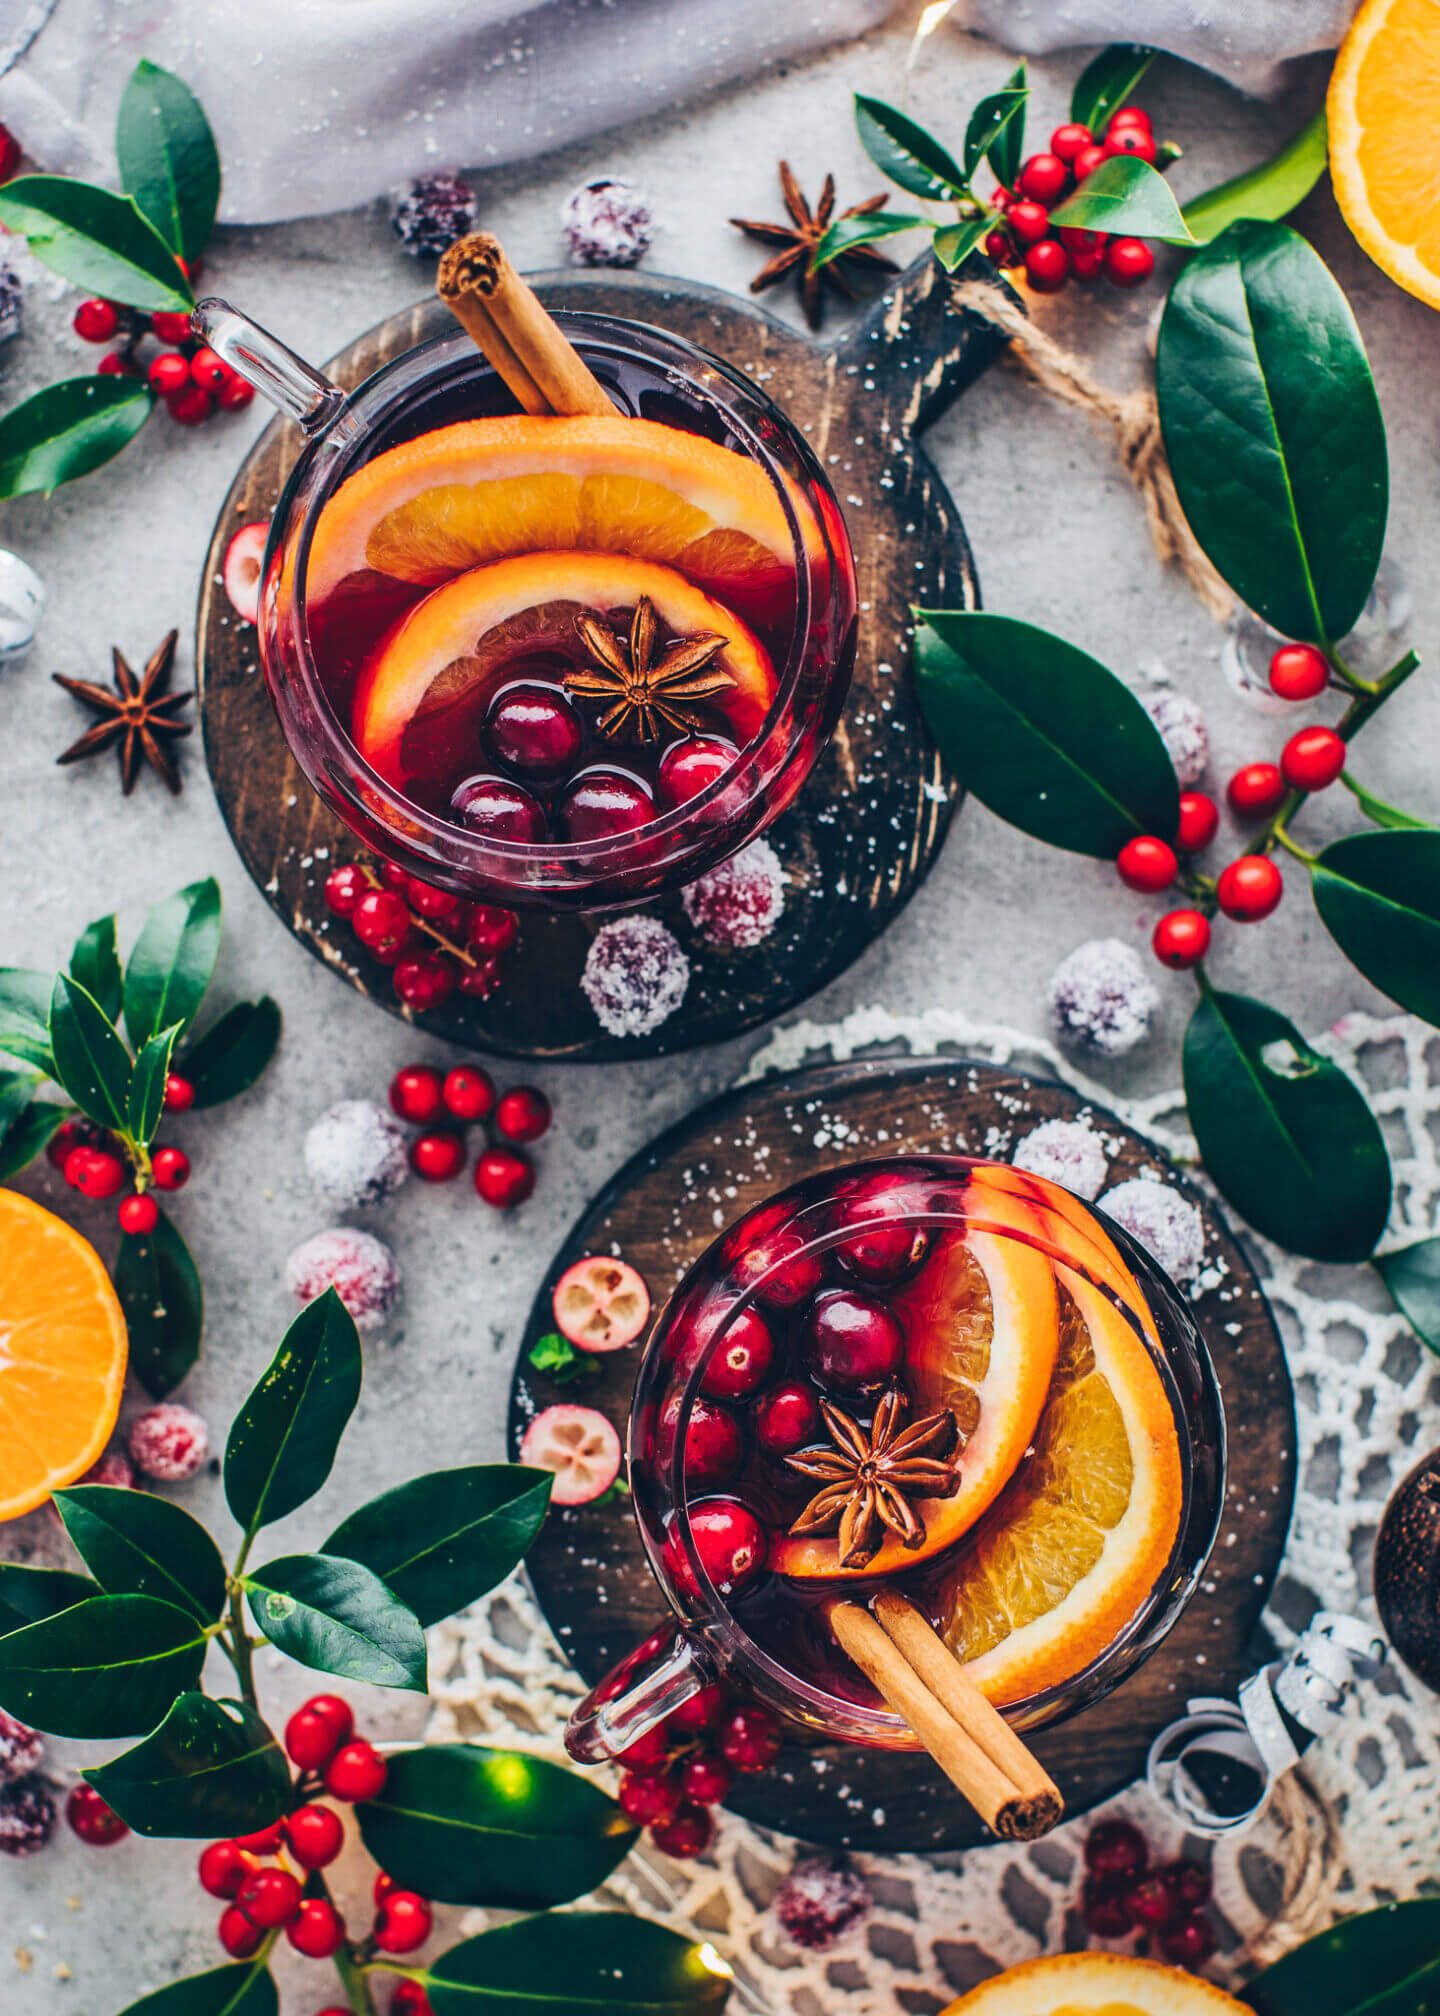 Mulled Wine - Winter Fruit Punch with oranges, cranberries, cloves, star anise, cinnamon